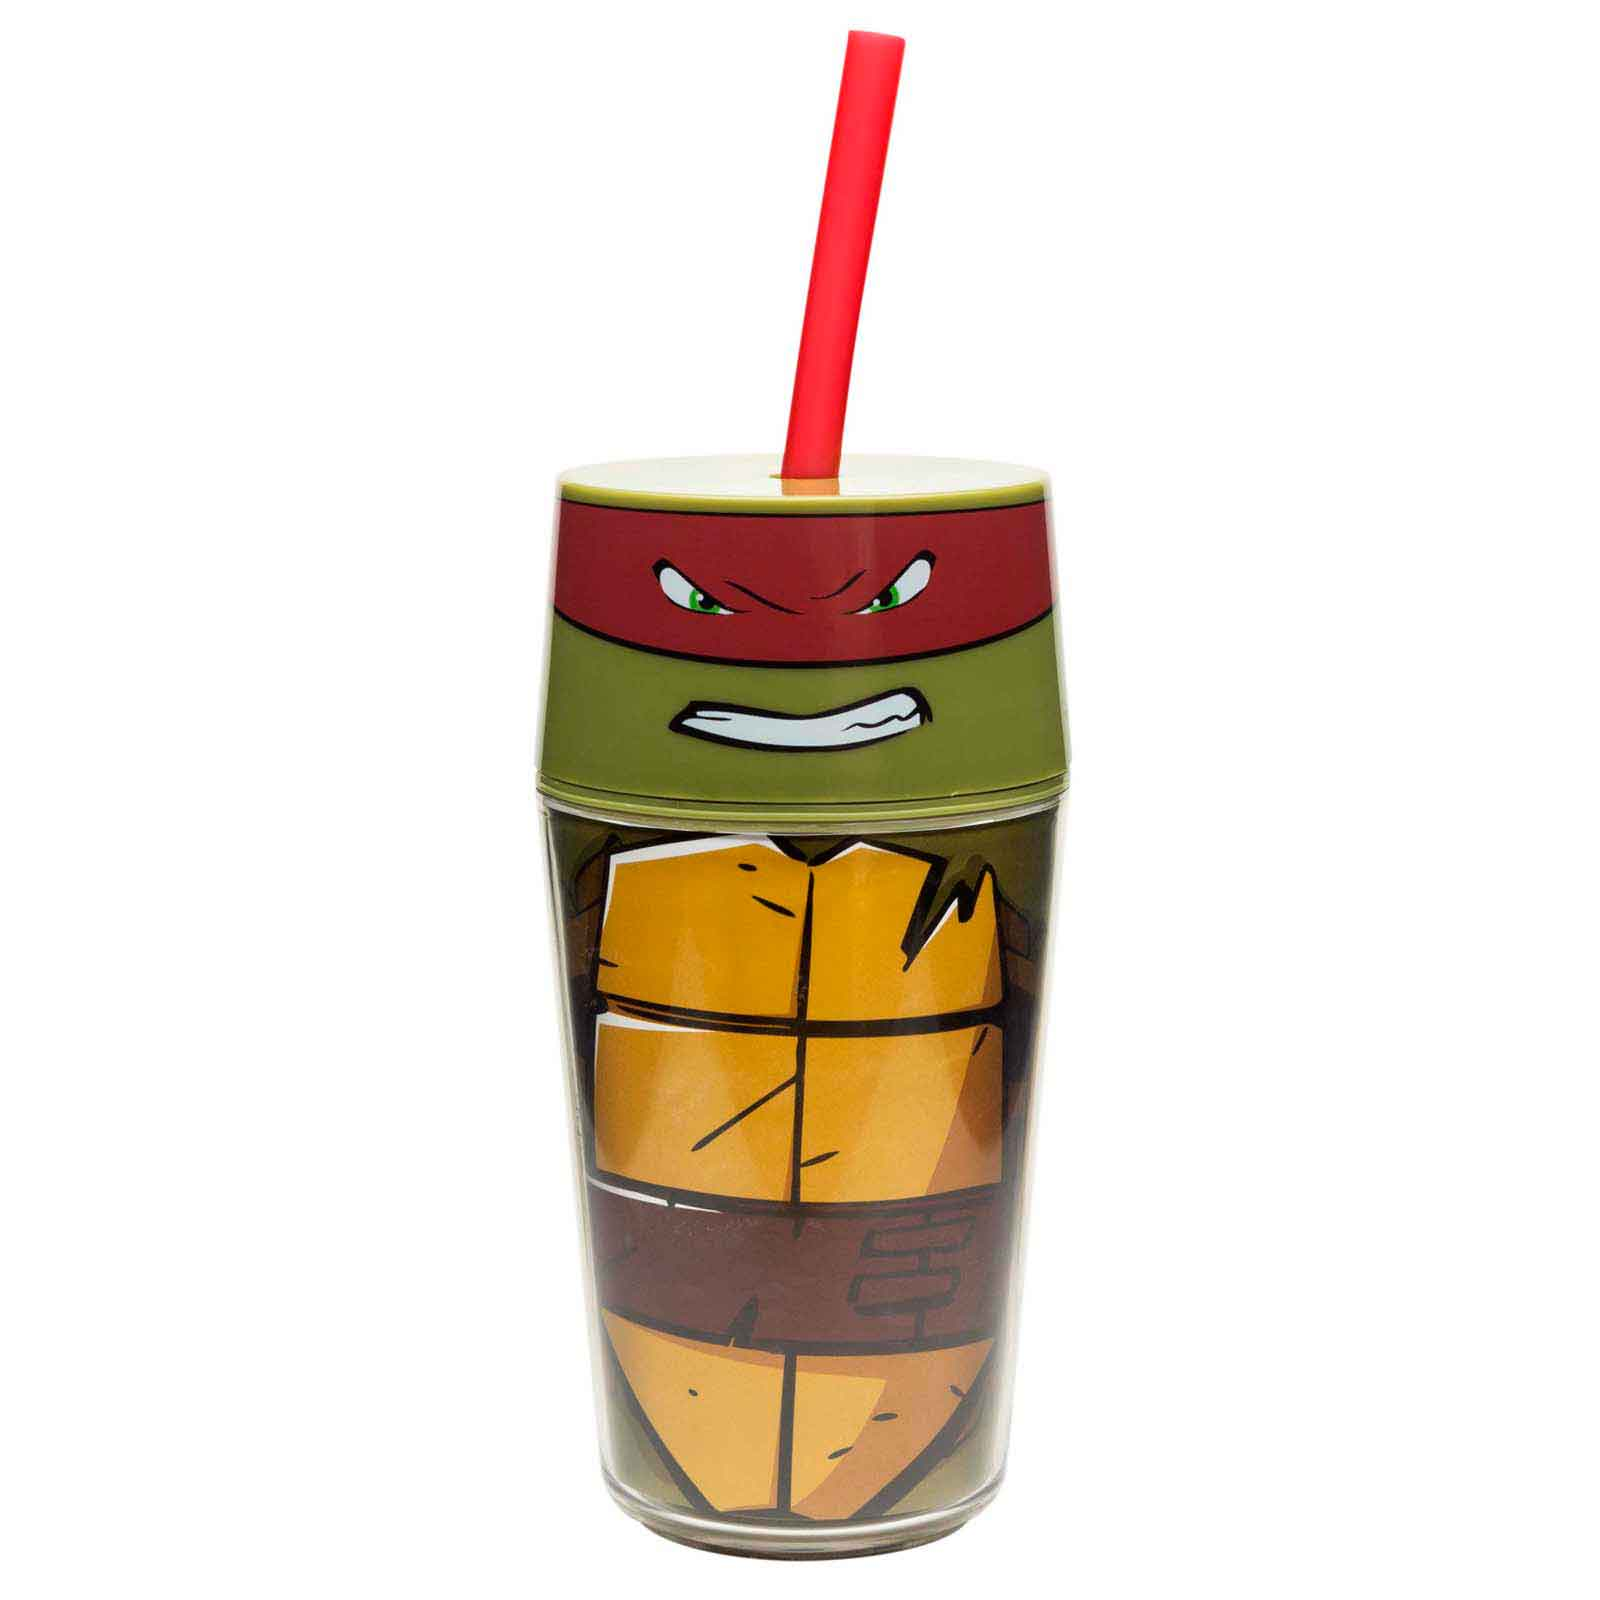 Ninja Turtles Insulated Tumbler with Straw - Raphael